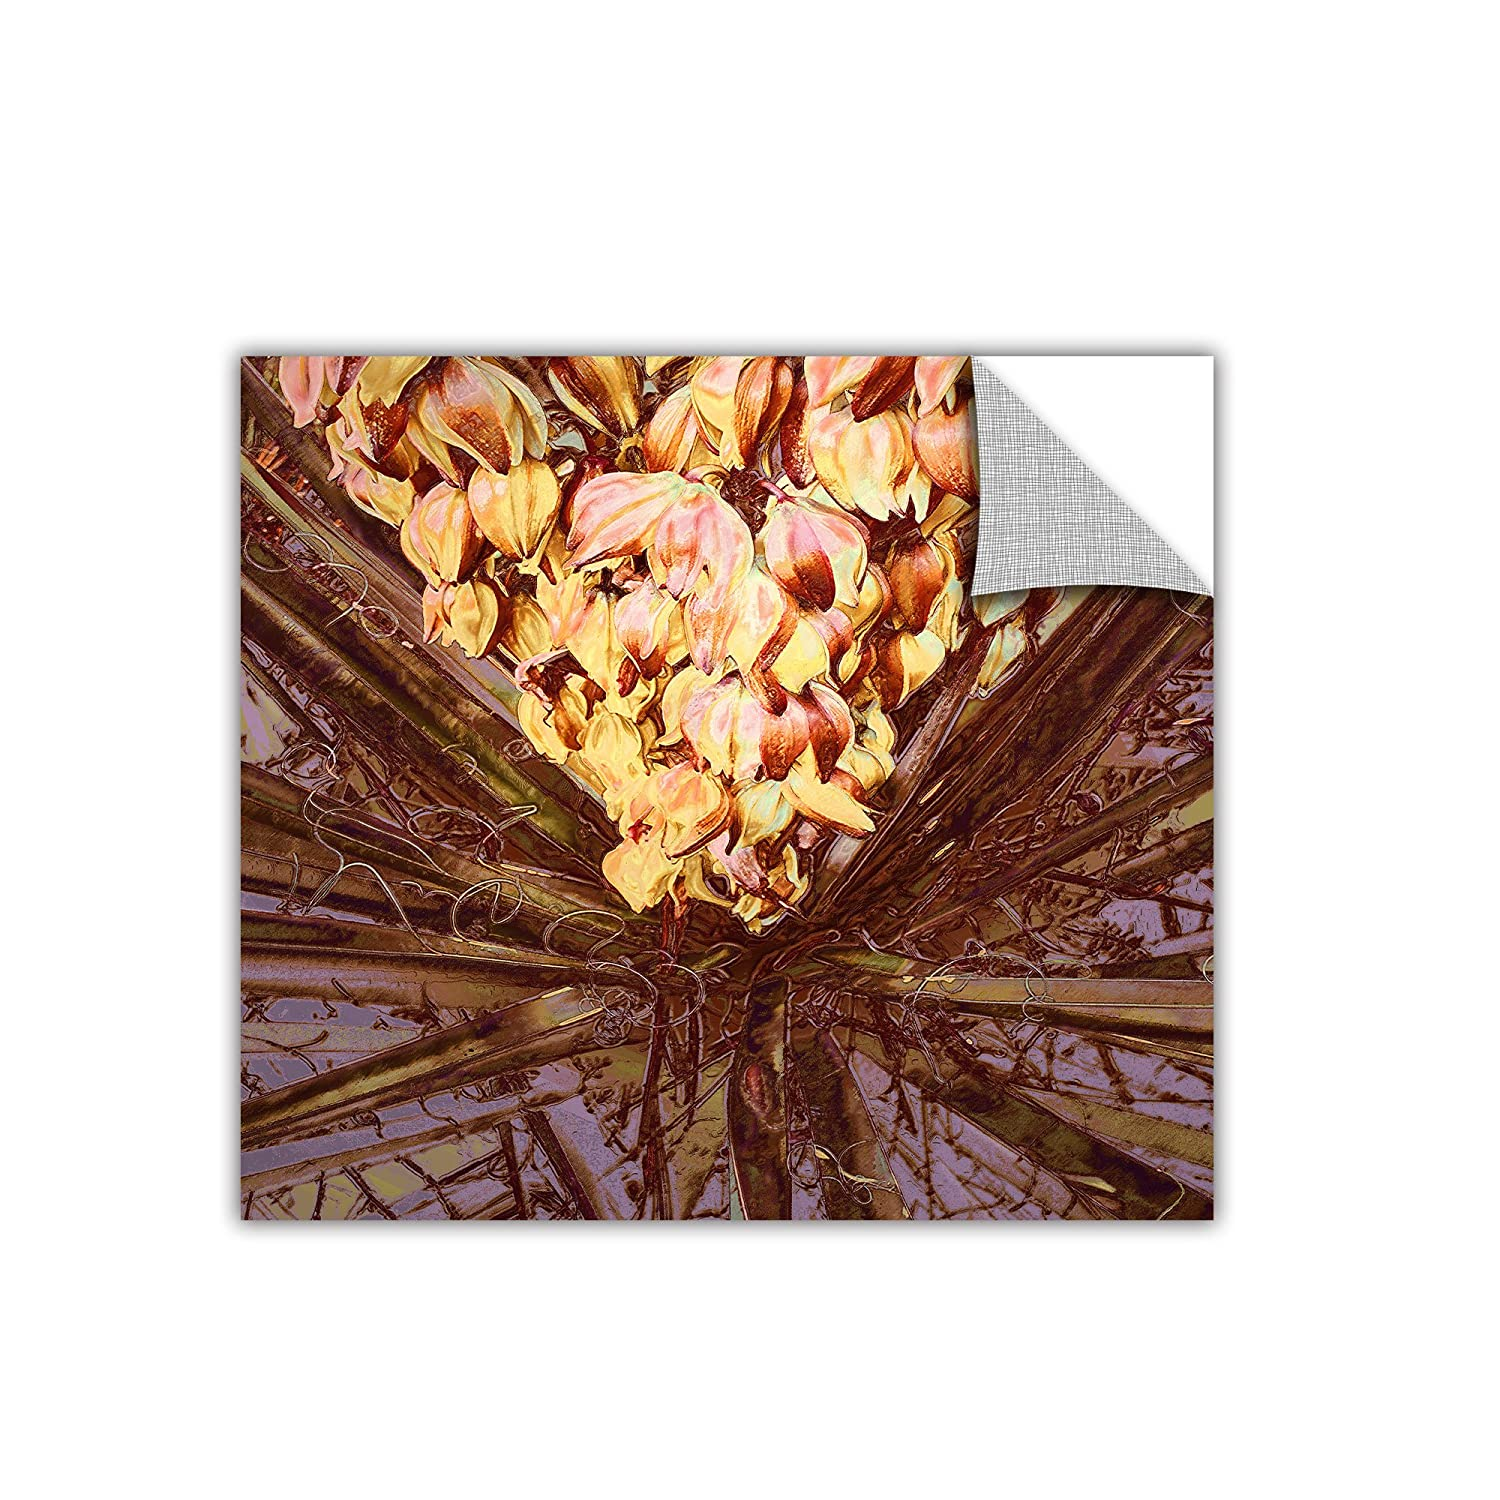 14 by 14-Inch ArtWall Appealz Dean Uhlinger Yucca Impression Removable Graphic Wall Art